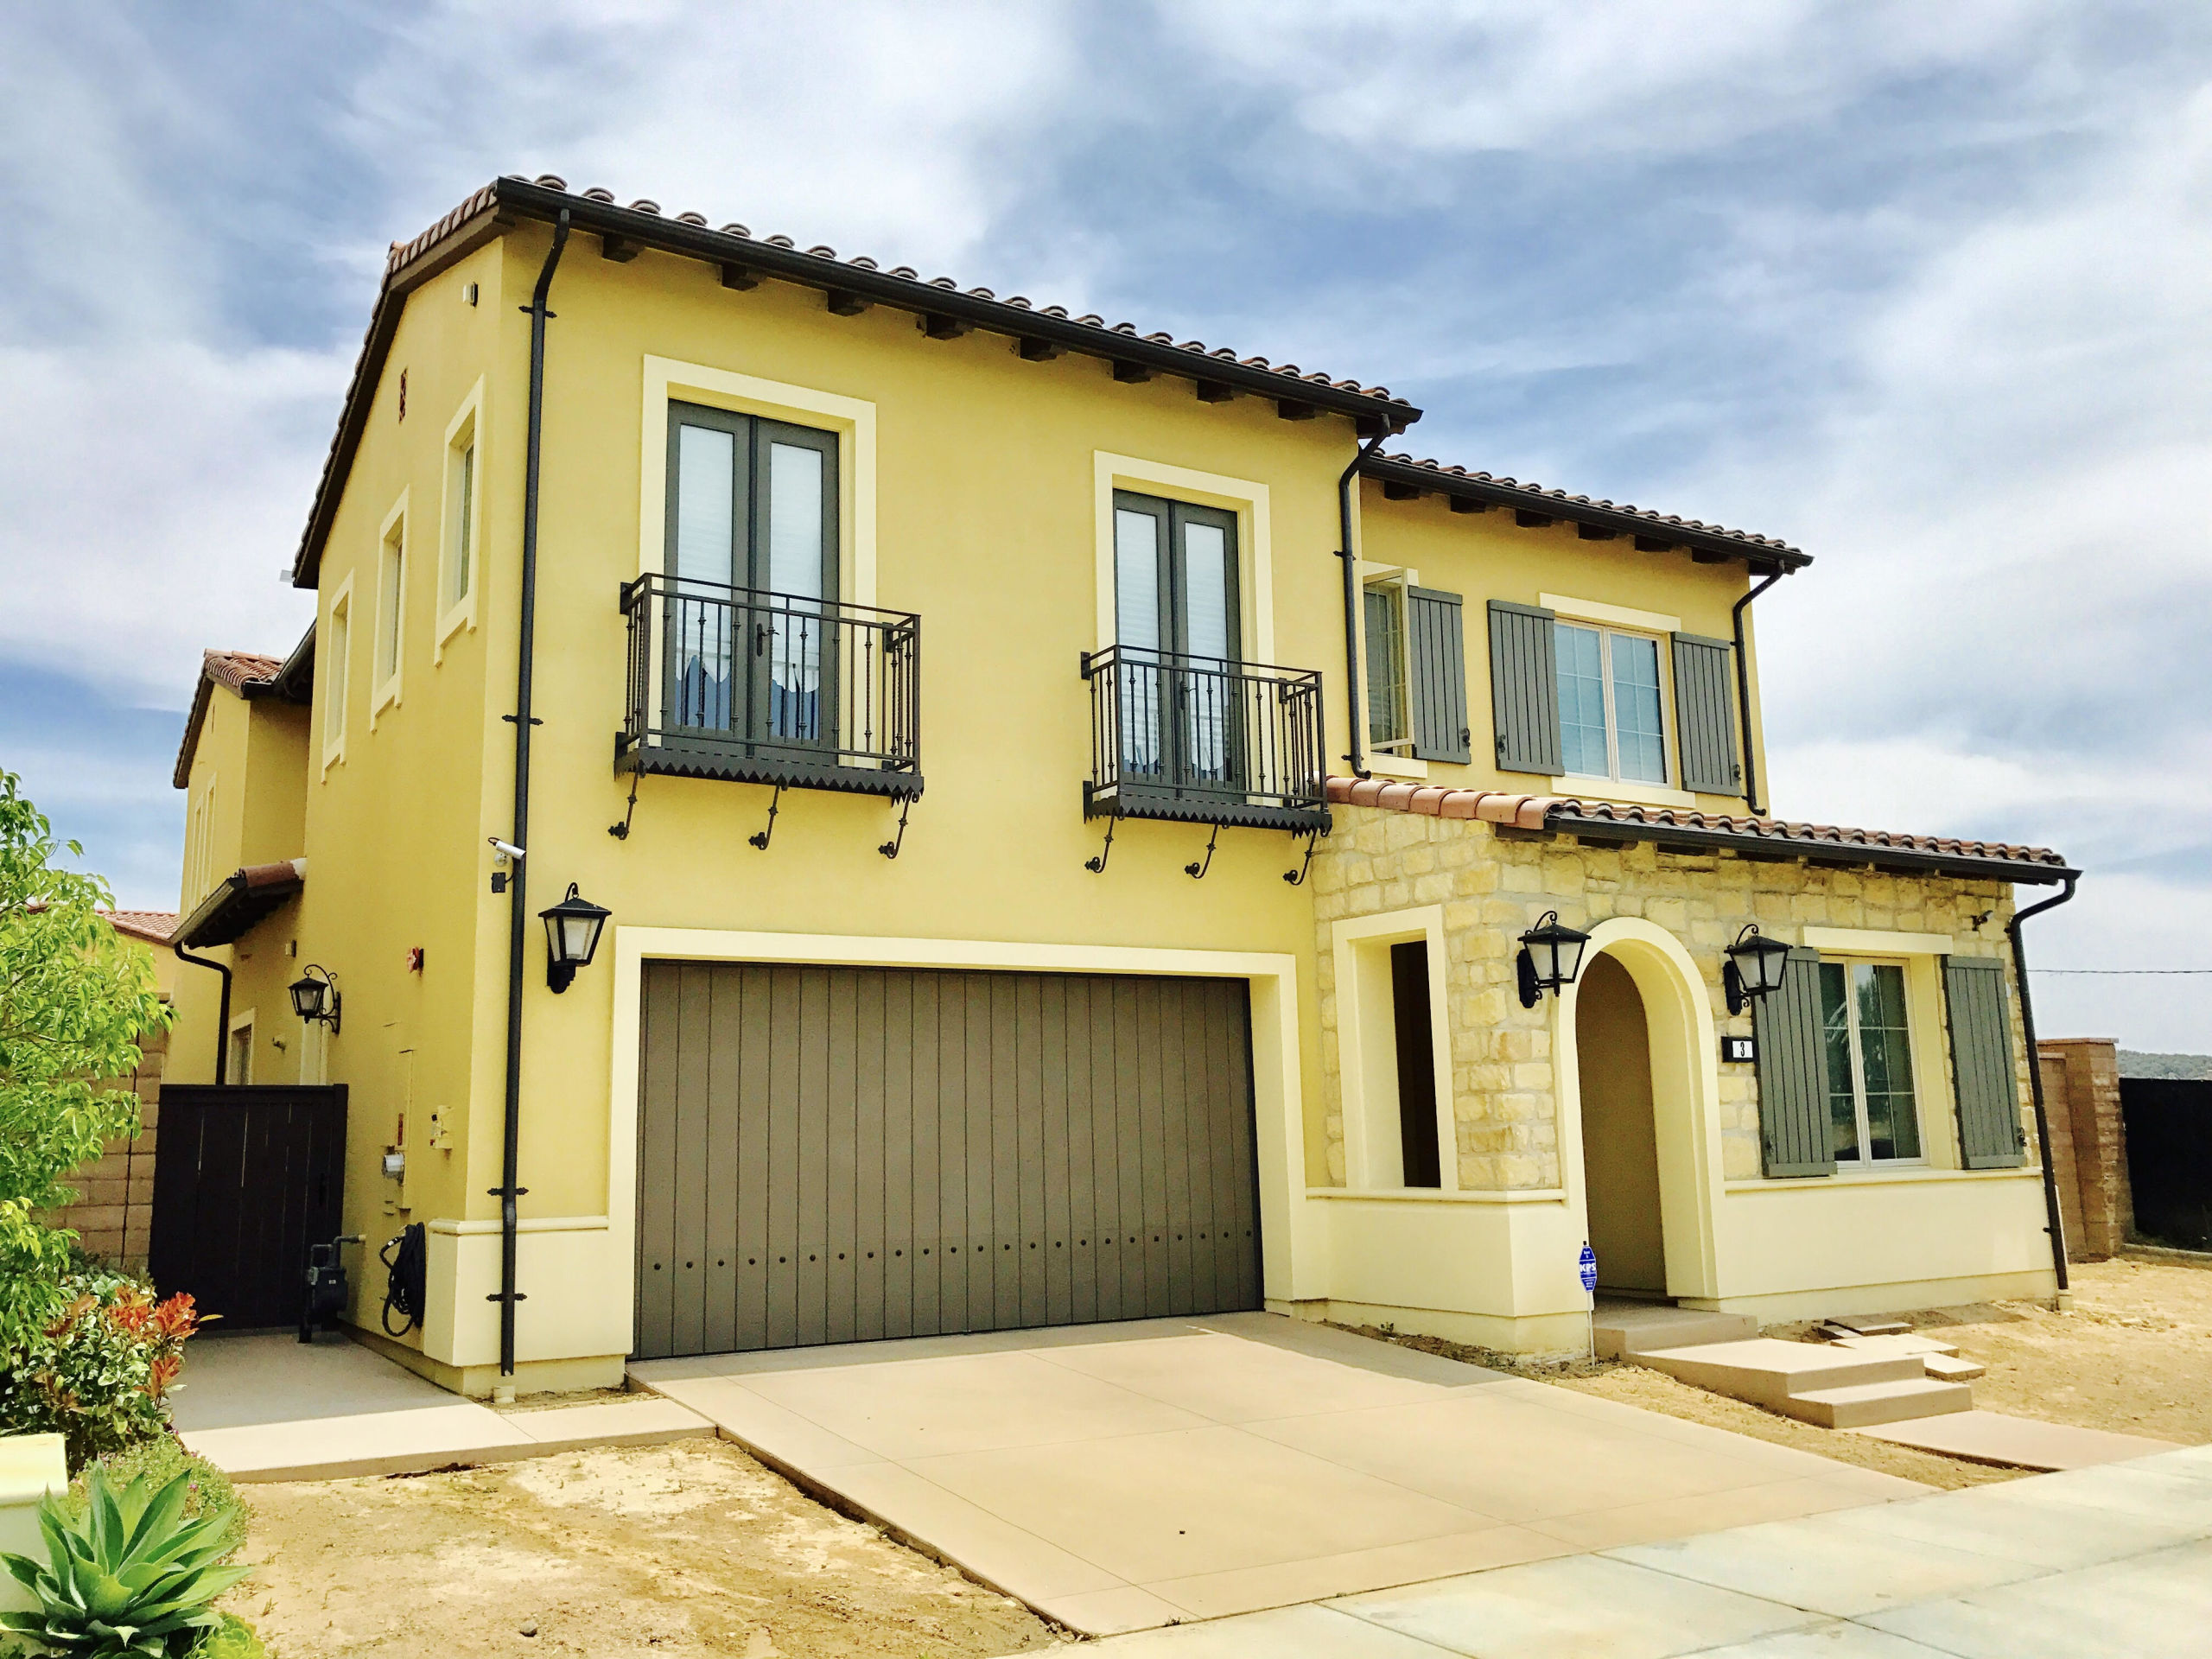 3 Shadybend, Irvine, CA92602 For Sale @$2,250,250